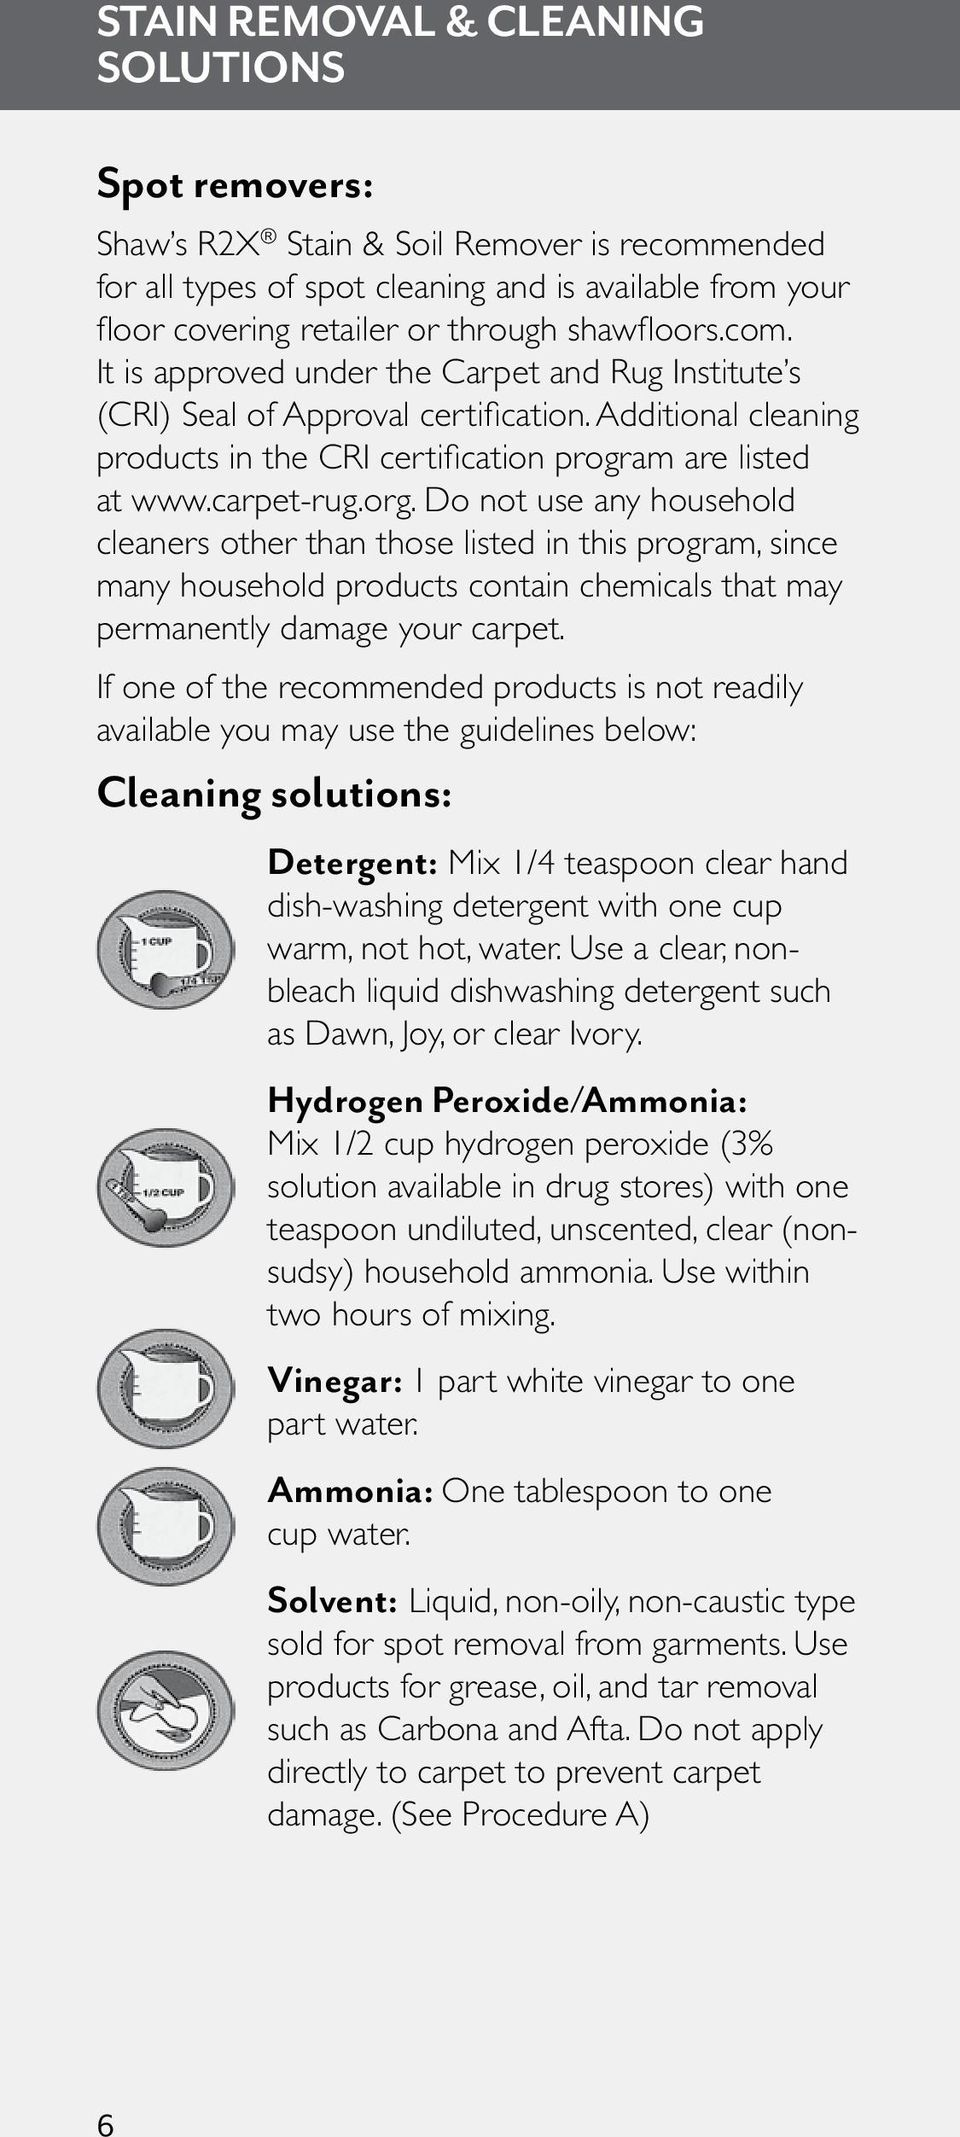 org. Do not use any household cleaners other than those listed in this program, since many household products contain chemicals that may permanently damage your carpet.